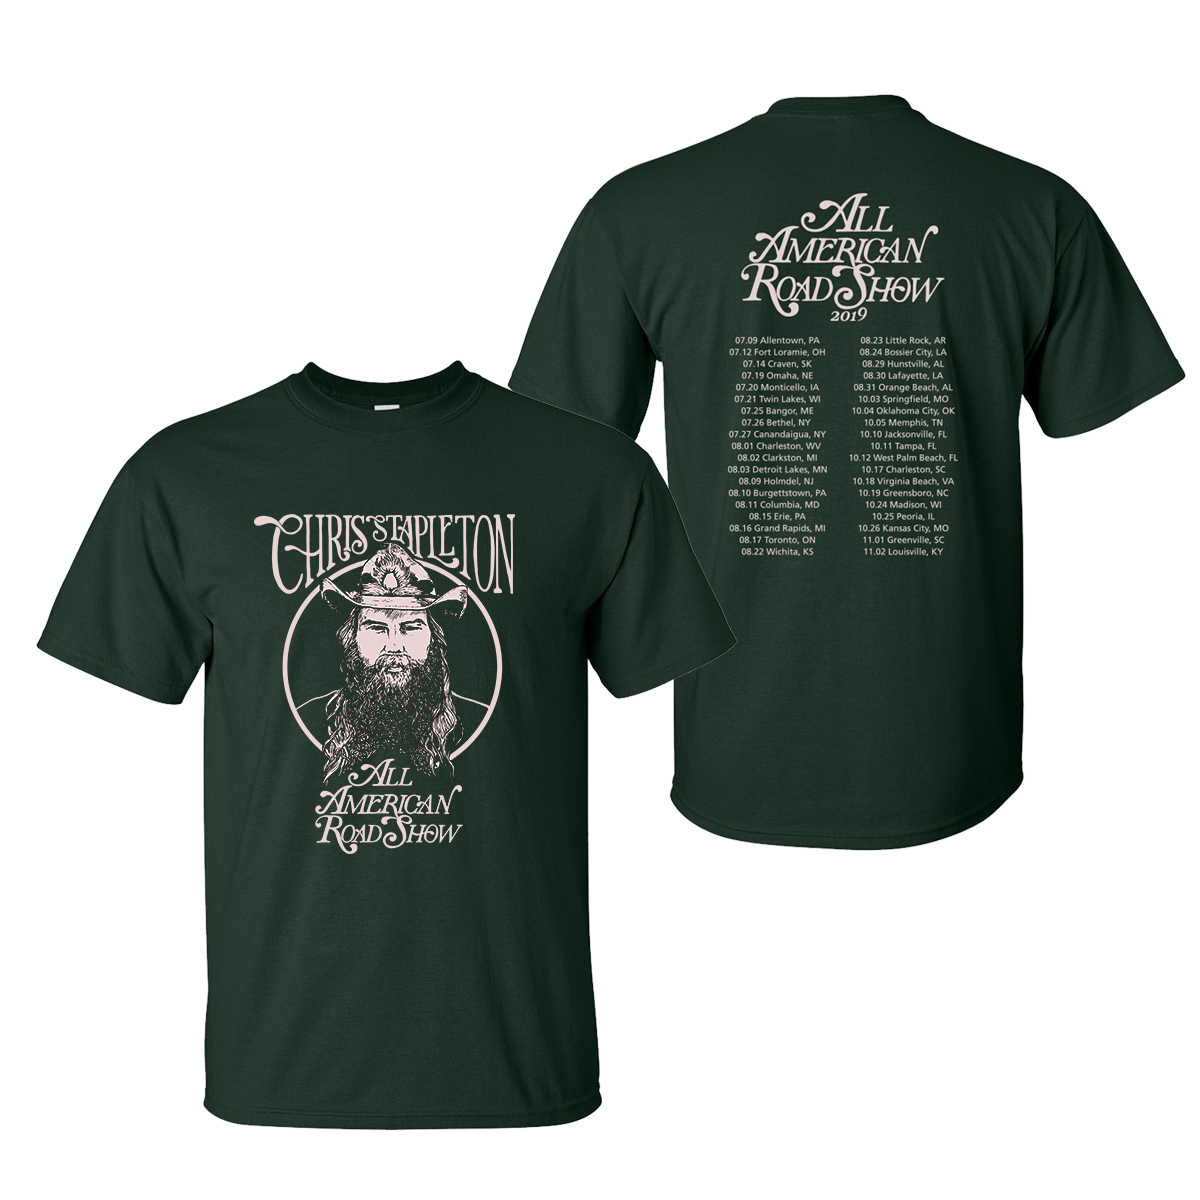 The 2019 All American Road Show Tour Tee